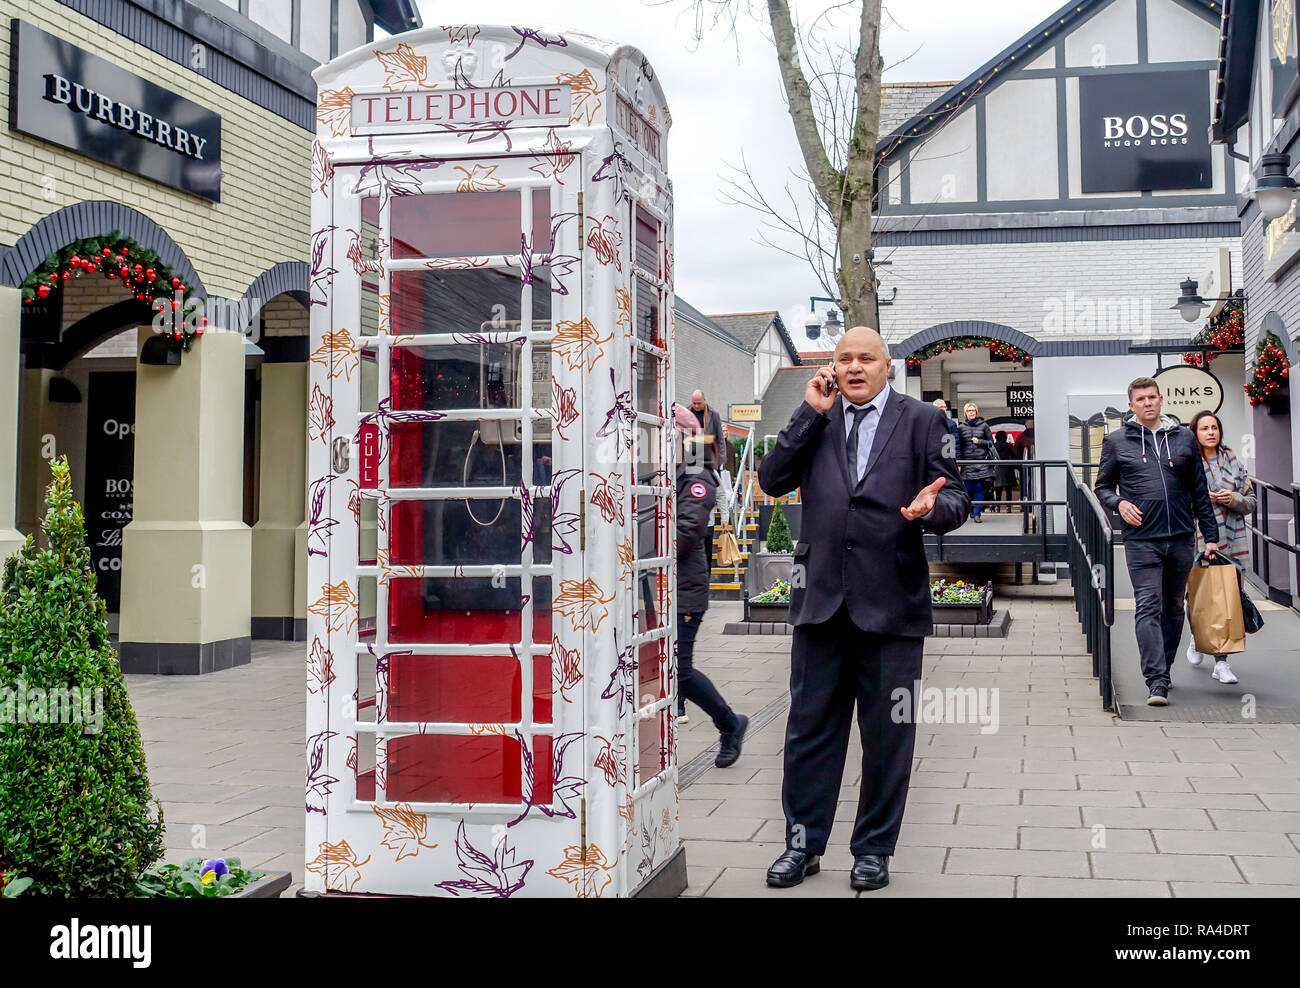 A man uses a mobile phone next to a public phonebox - Stock Image